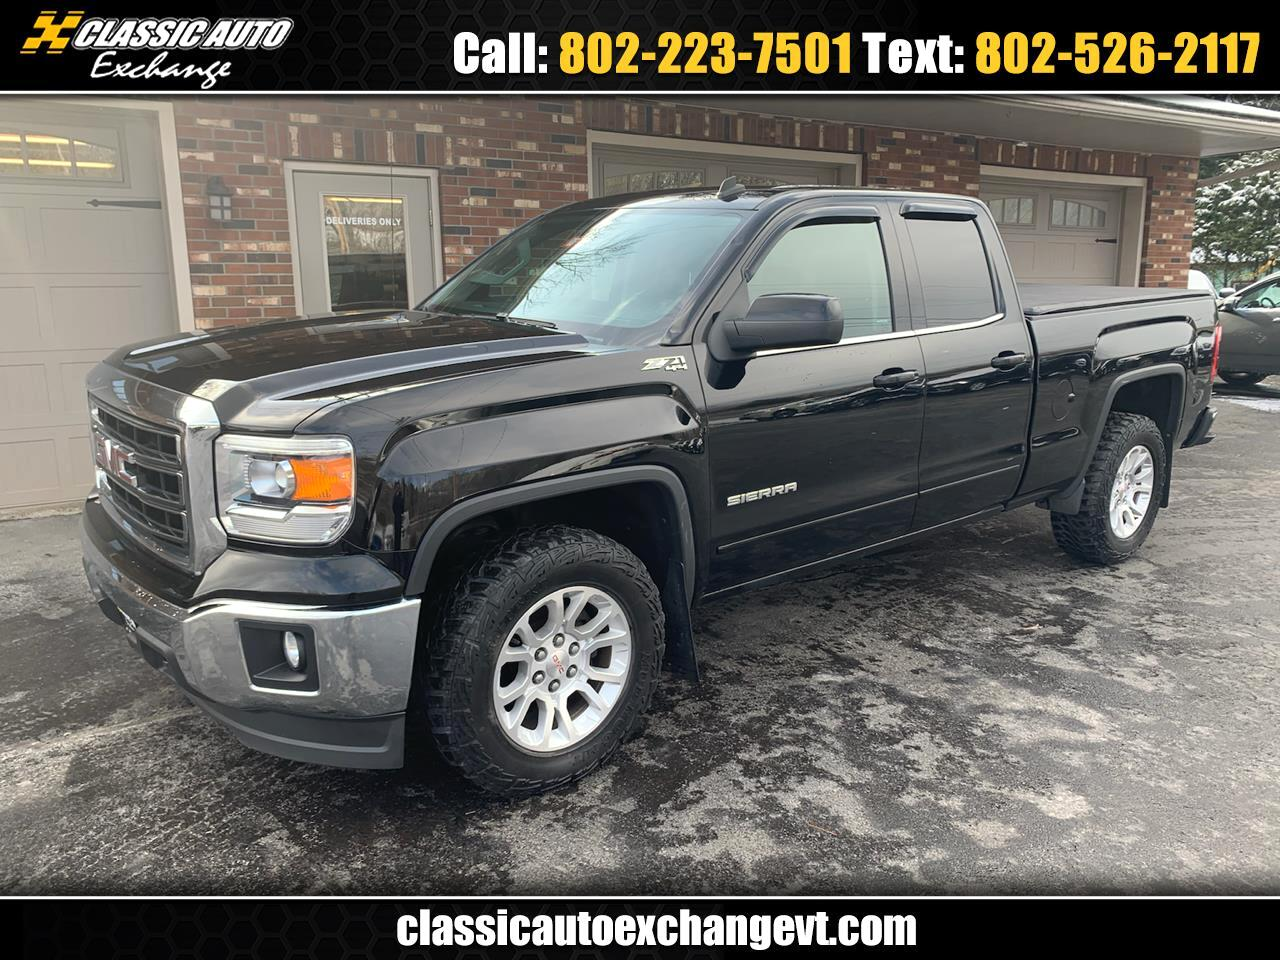 Gmc Dealers In Vt >> Used 2014 Gmc Sierra 1500 Slt Ext Cab 4wd For Sale In Berlin